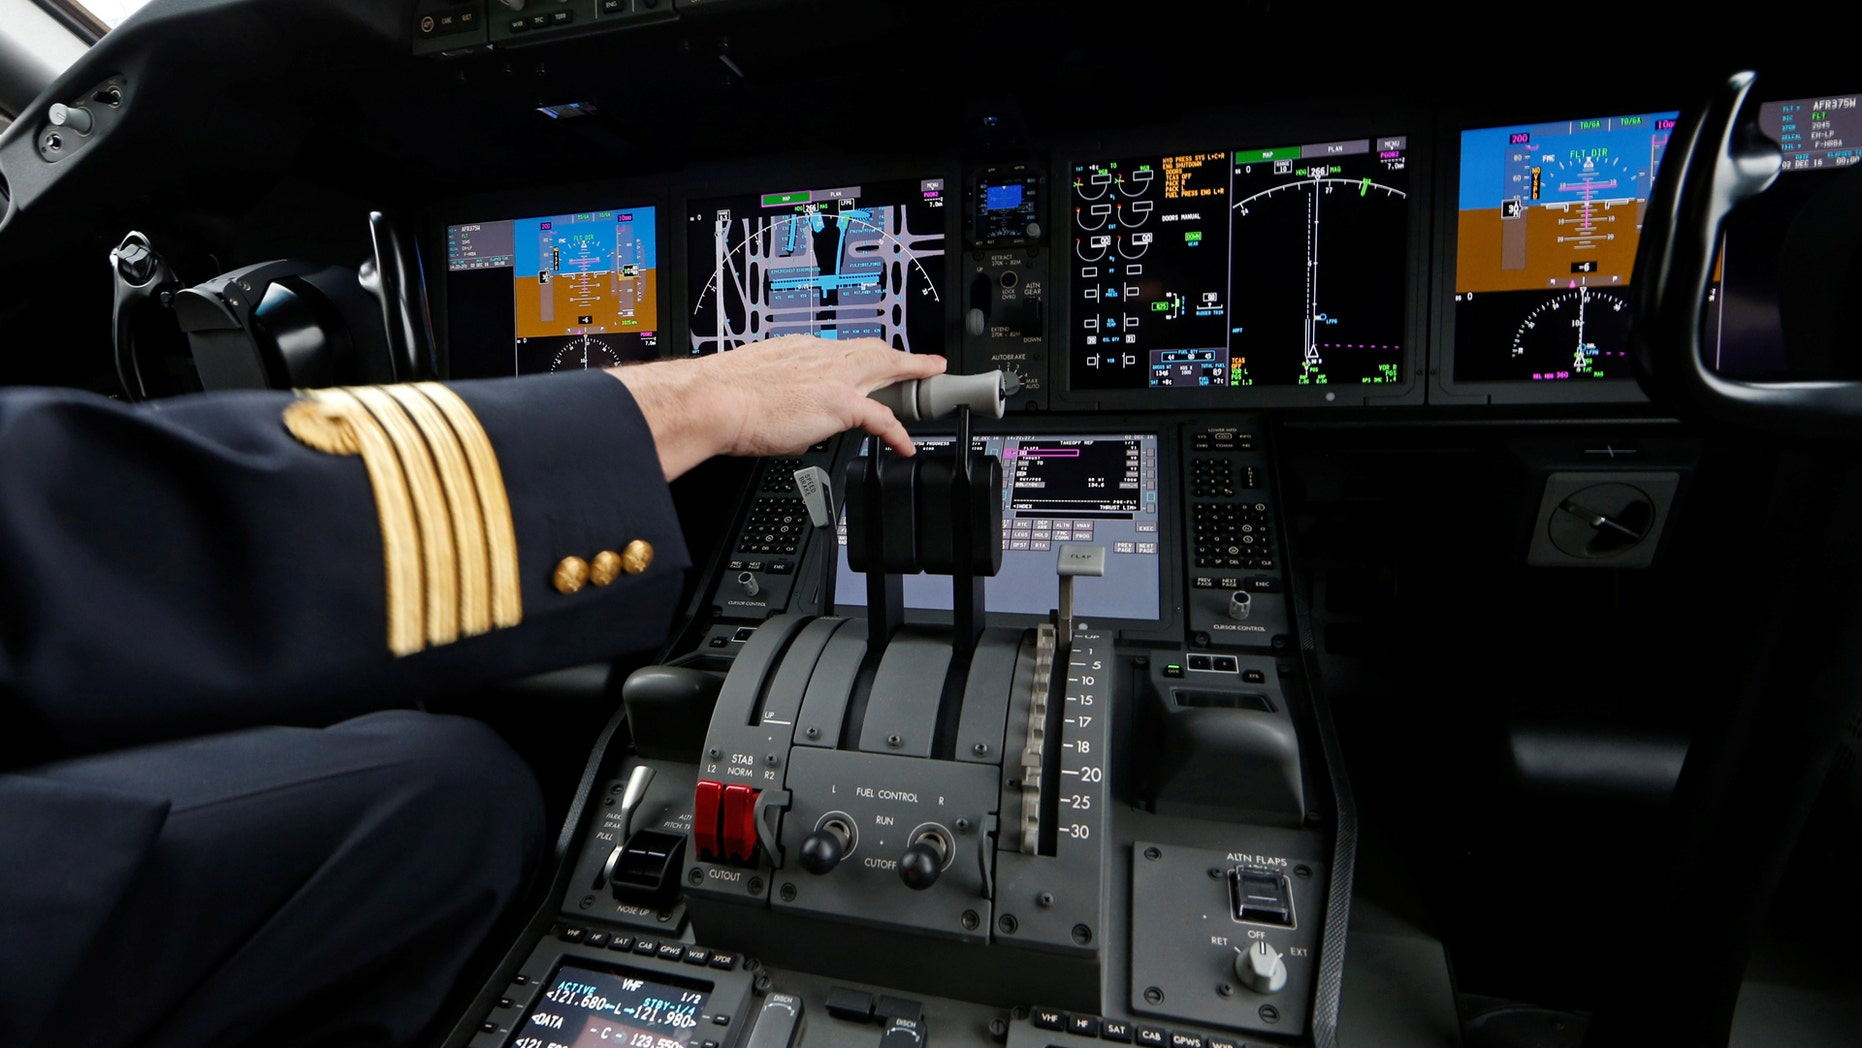 File photo: An Air France pilot stands in the cockpit of the airline's new Boeing Inc. 787-9 Dreamliner passenger aircraft as it stands on the tarmac at Charles de Gaulle Airport in Roissy, France, December 2, 2016. (REUTERS/Benoit Tessier)